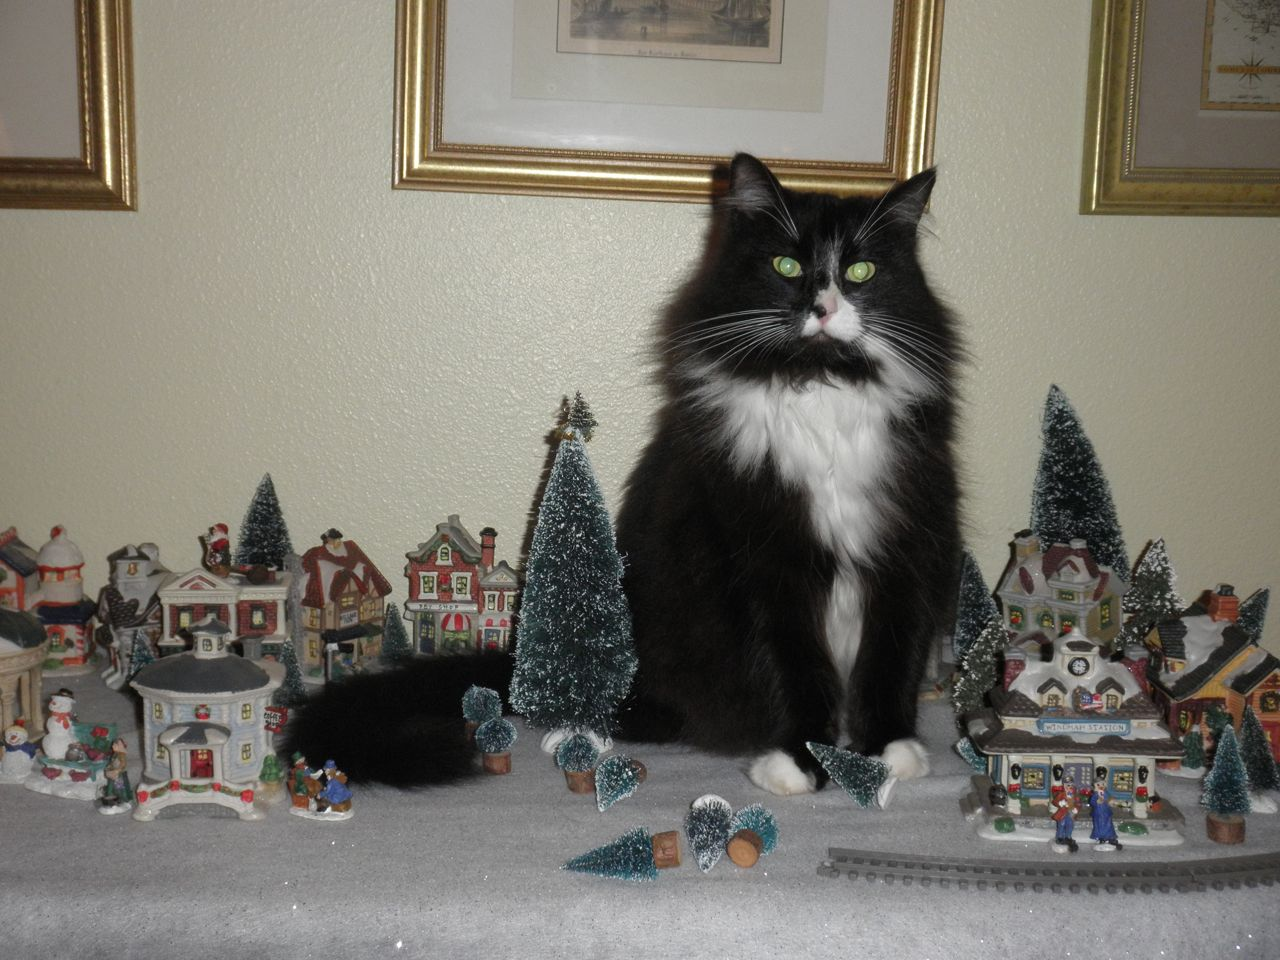 Our cat Maya likes to play the Godzilla of the Christmas village. For some reason, she loves sitting in the middle of town.